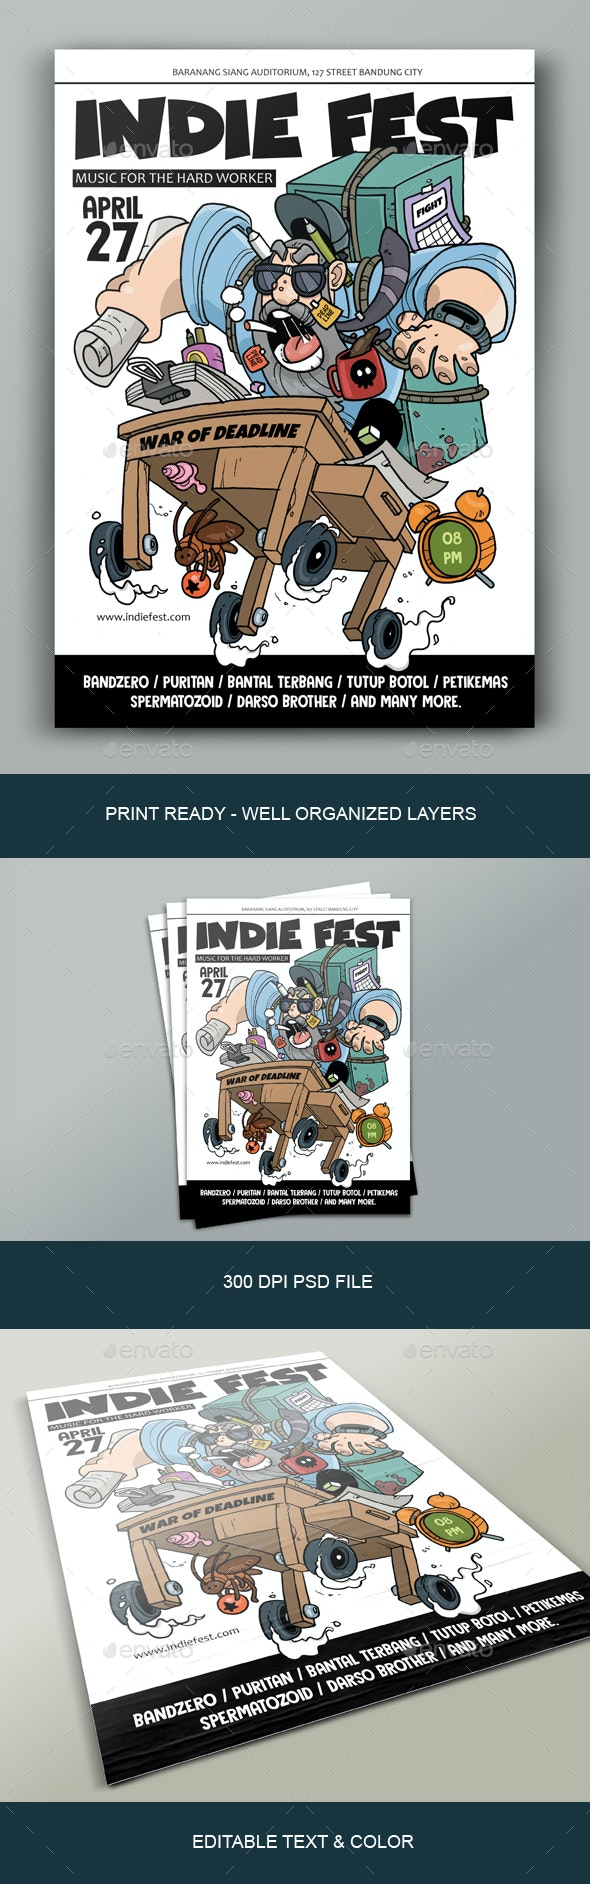 War of Deadline Poster - Miscellaneous Events